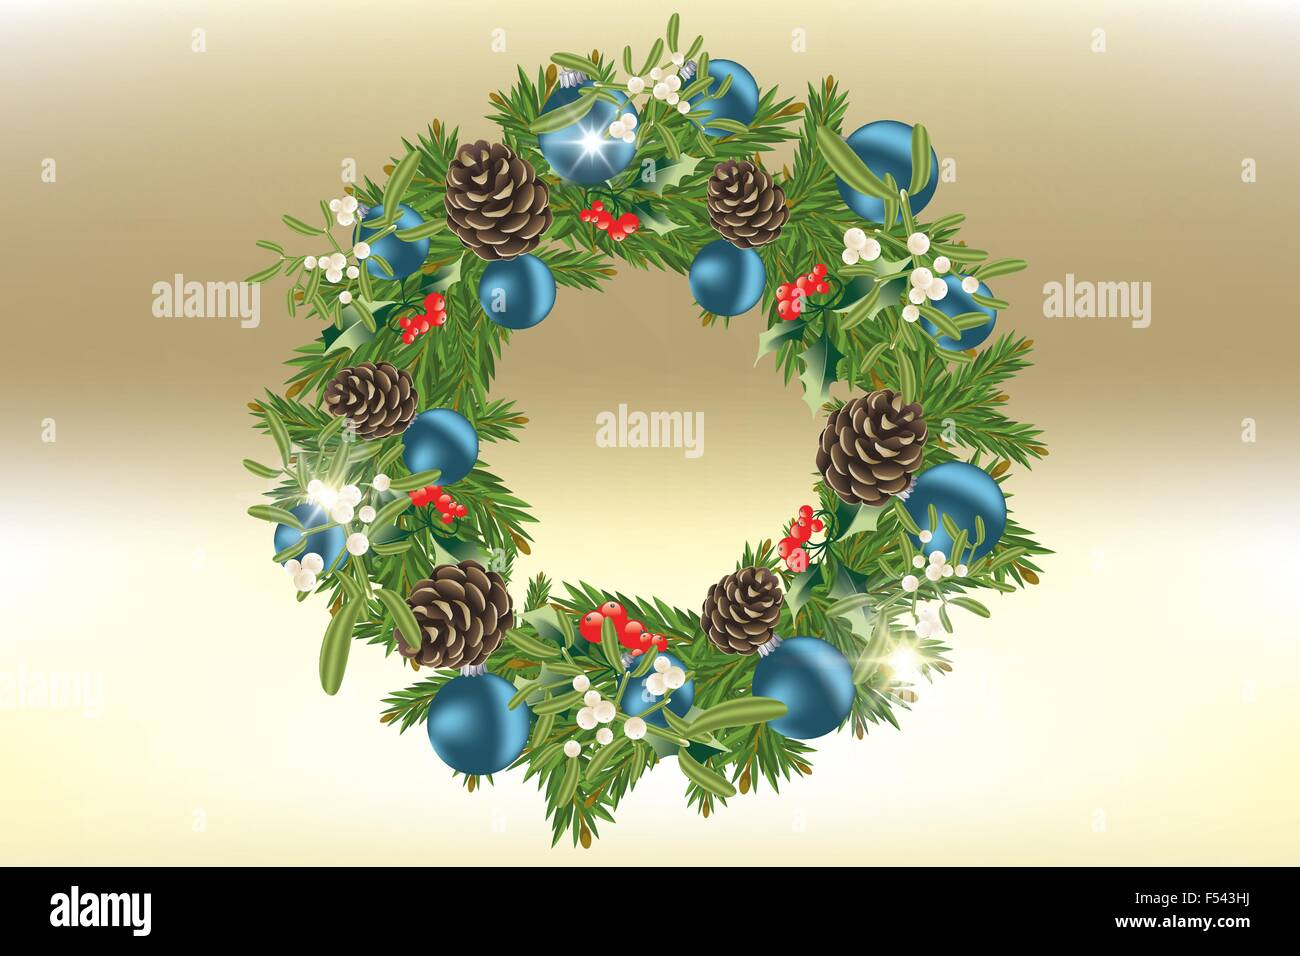 Decorated Christmas wreath with holly, mistletoe, pinecone, blue Christmas baubles on a shimmering golden background - Stock Image